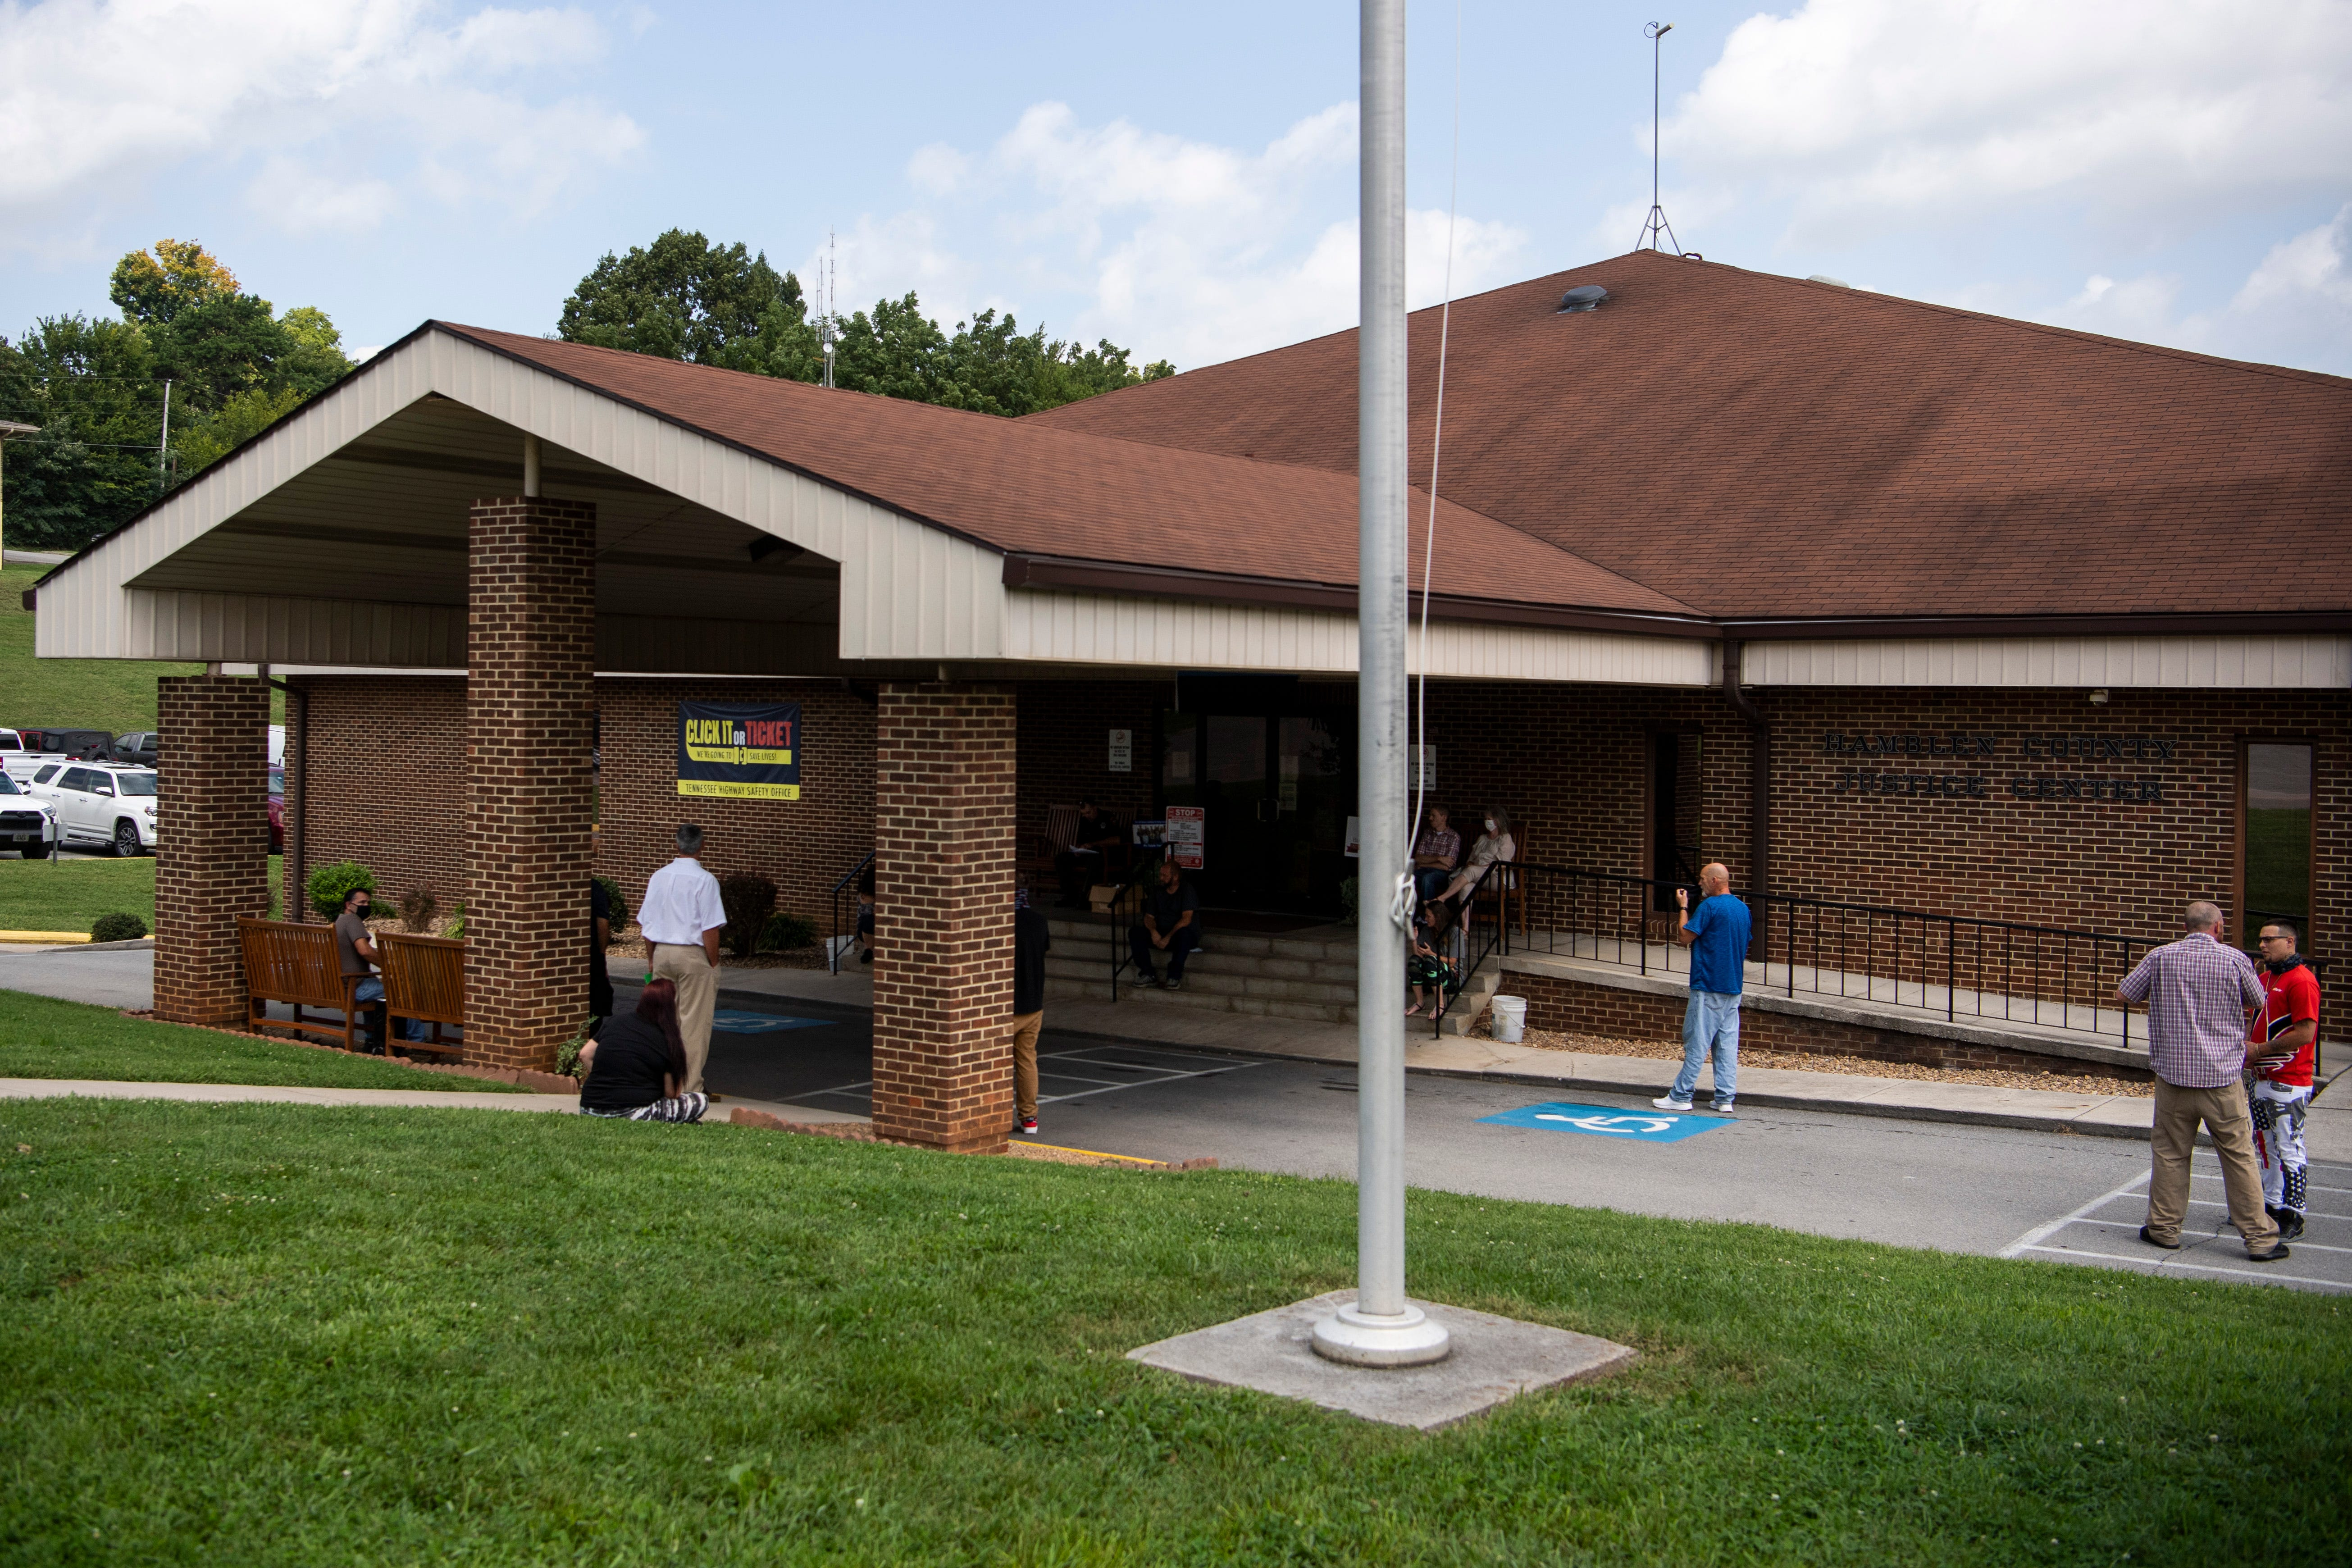 """""""We sort of came into Hamblen County to see if it was worth challenging (bail practices),"""" Civil Rights Corps attorney Tara Mikkilineni said. """"It was absolutely horrendous."""""""